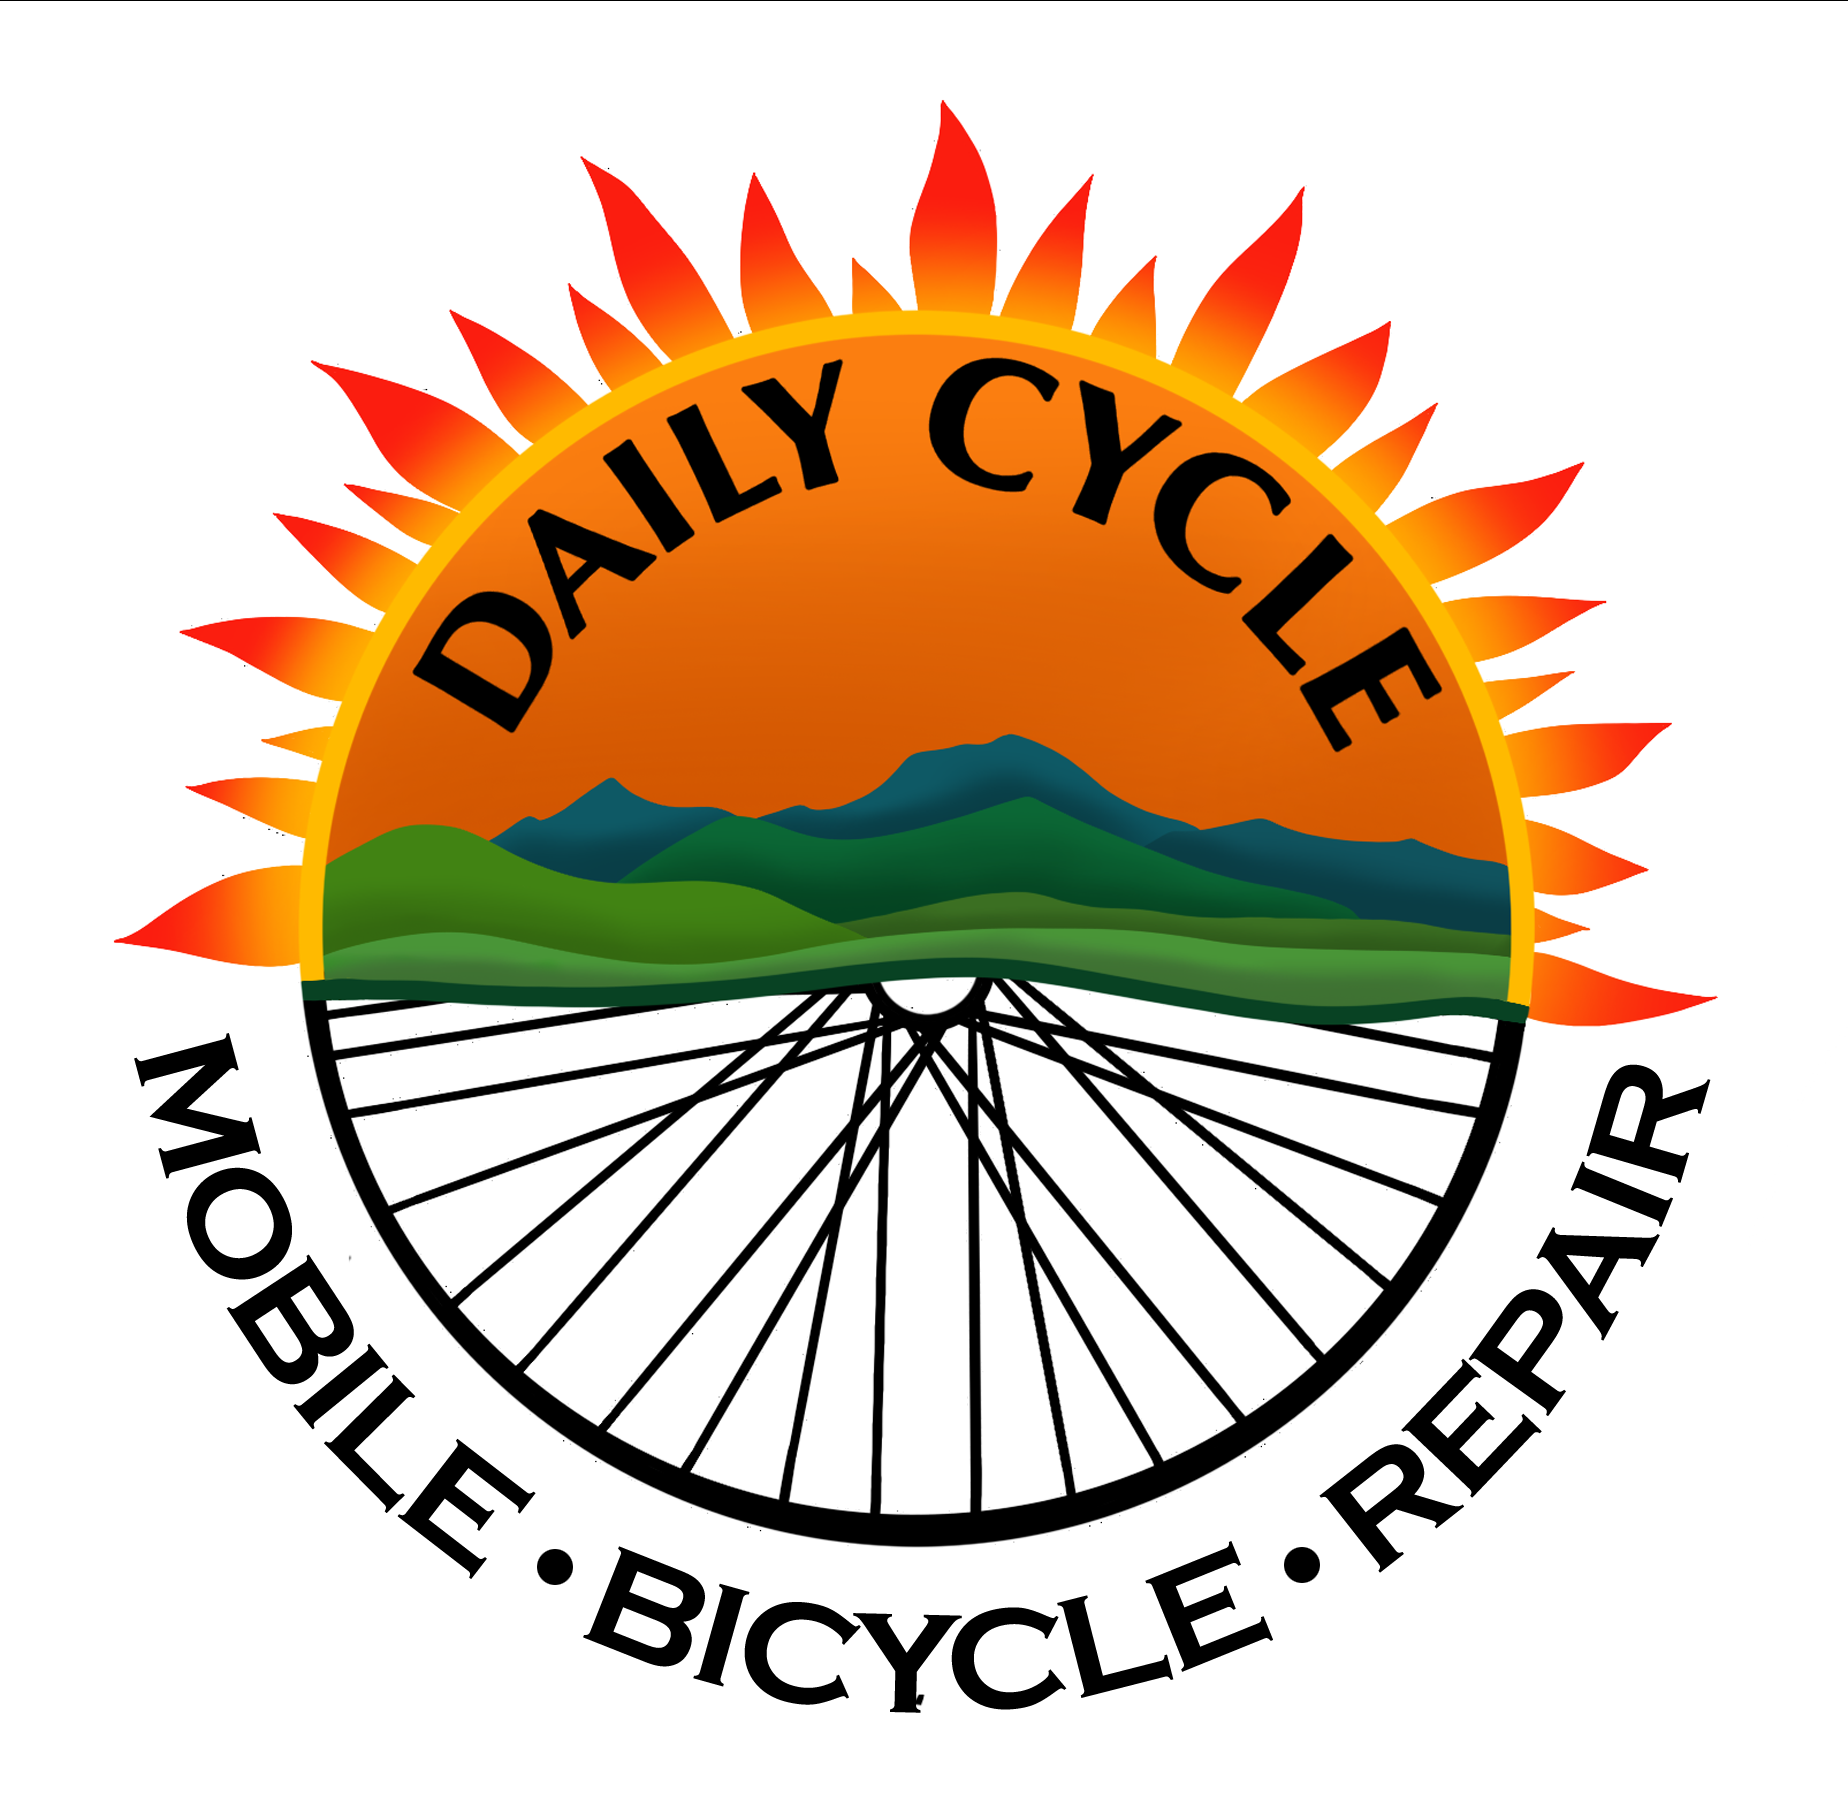 Daily Cycle